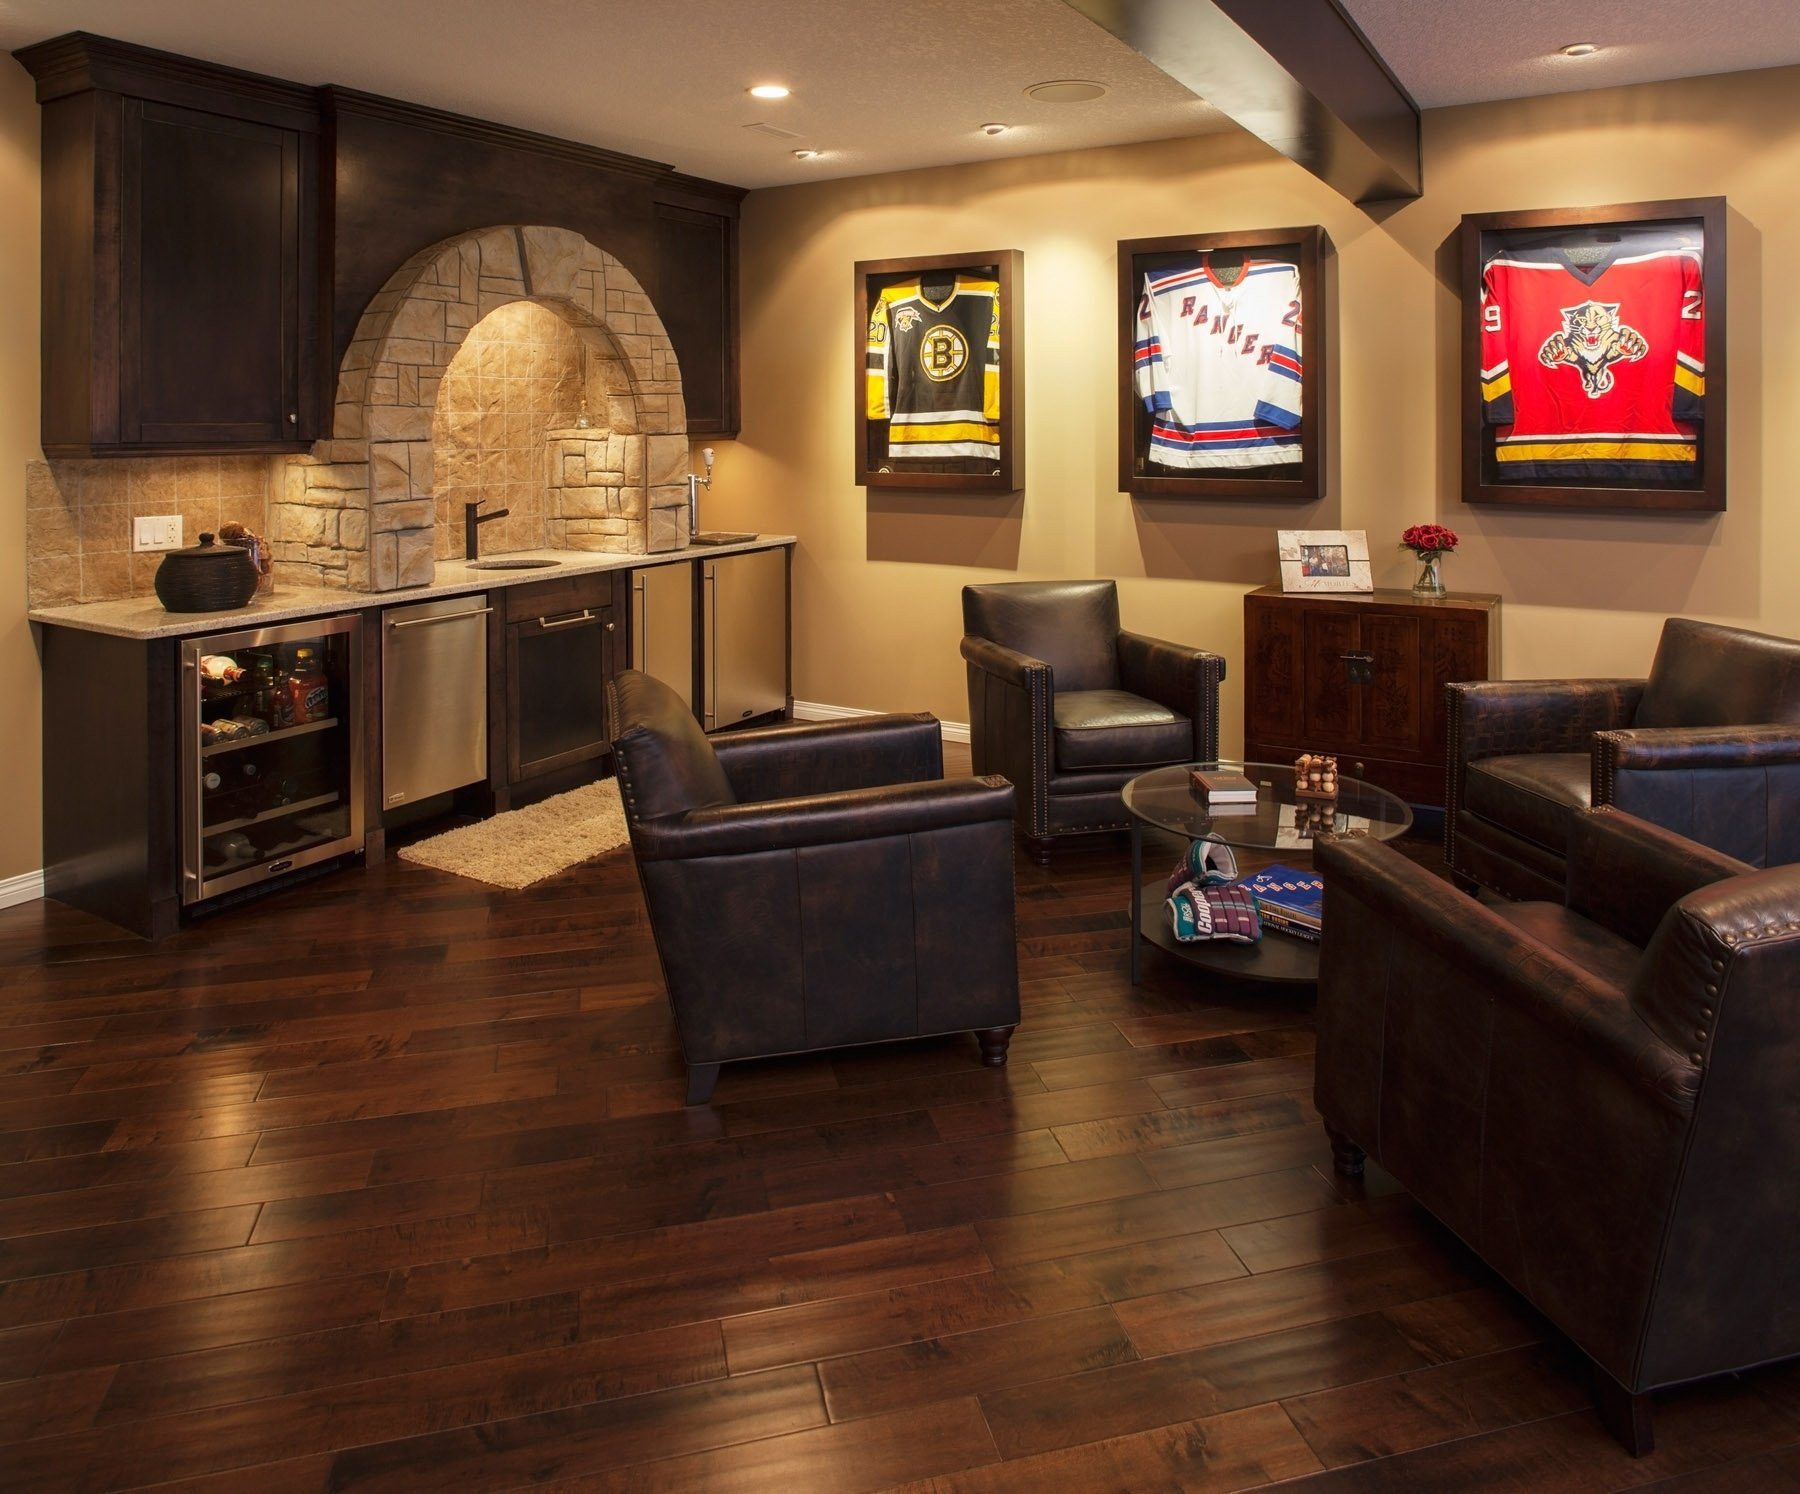 10 Amazing Man Cave Ideas For Basement great collection of man cave ideas for basemen 19289 2020